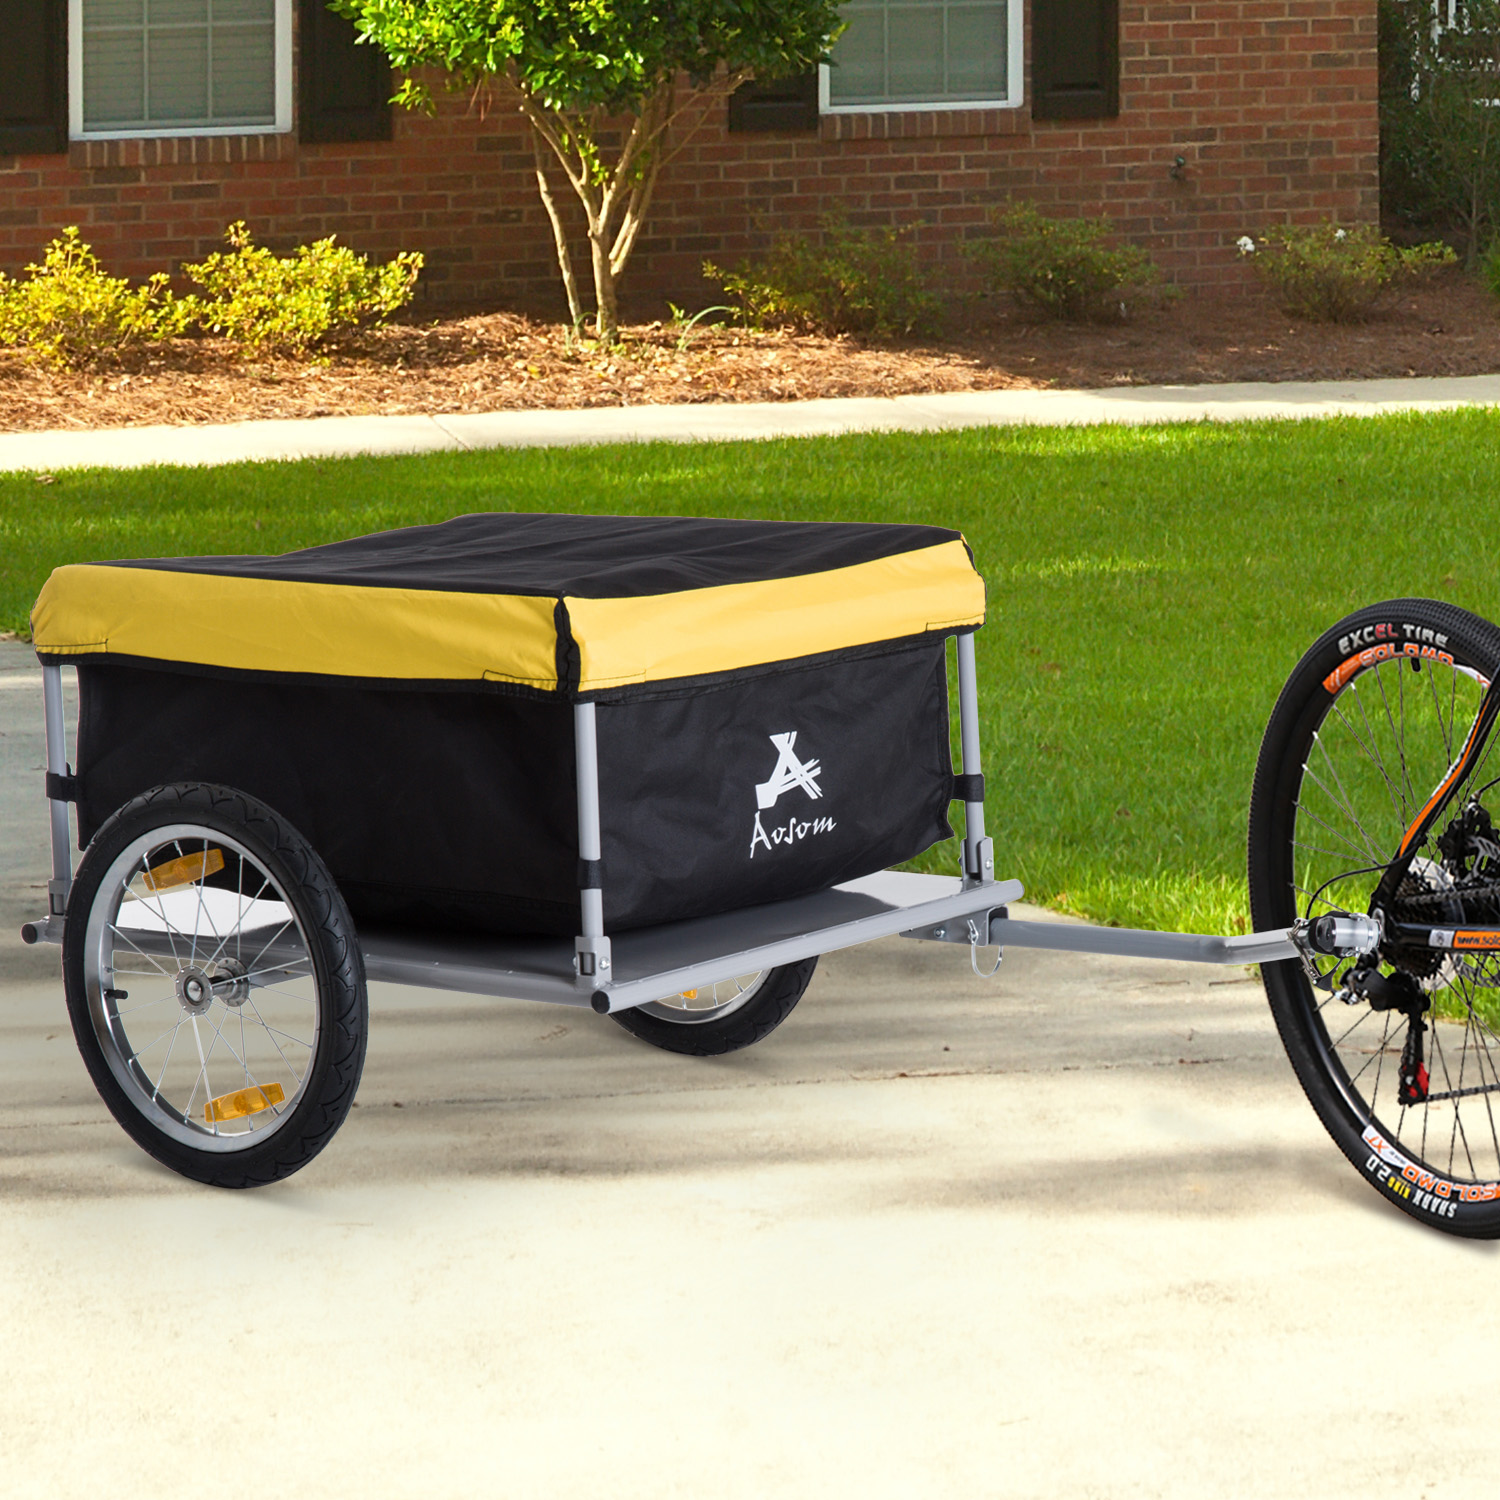 Image of CAD $129.99 Aosom Bicycle Bike Cargo Trailer Garden Utility Cart Carrier Tool Yellow / HOMCOM Large w/ Rain Cover Outdoor Yard Canada 25093570056